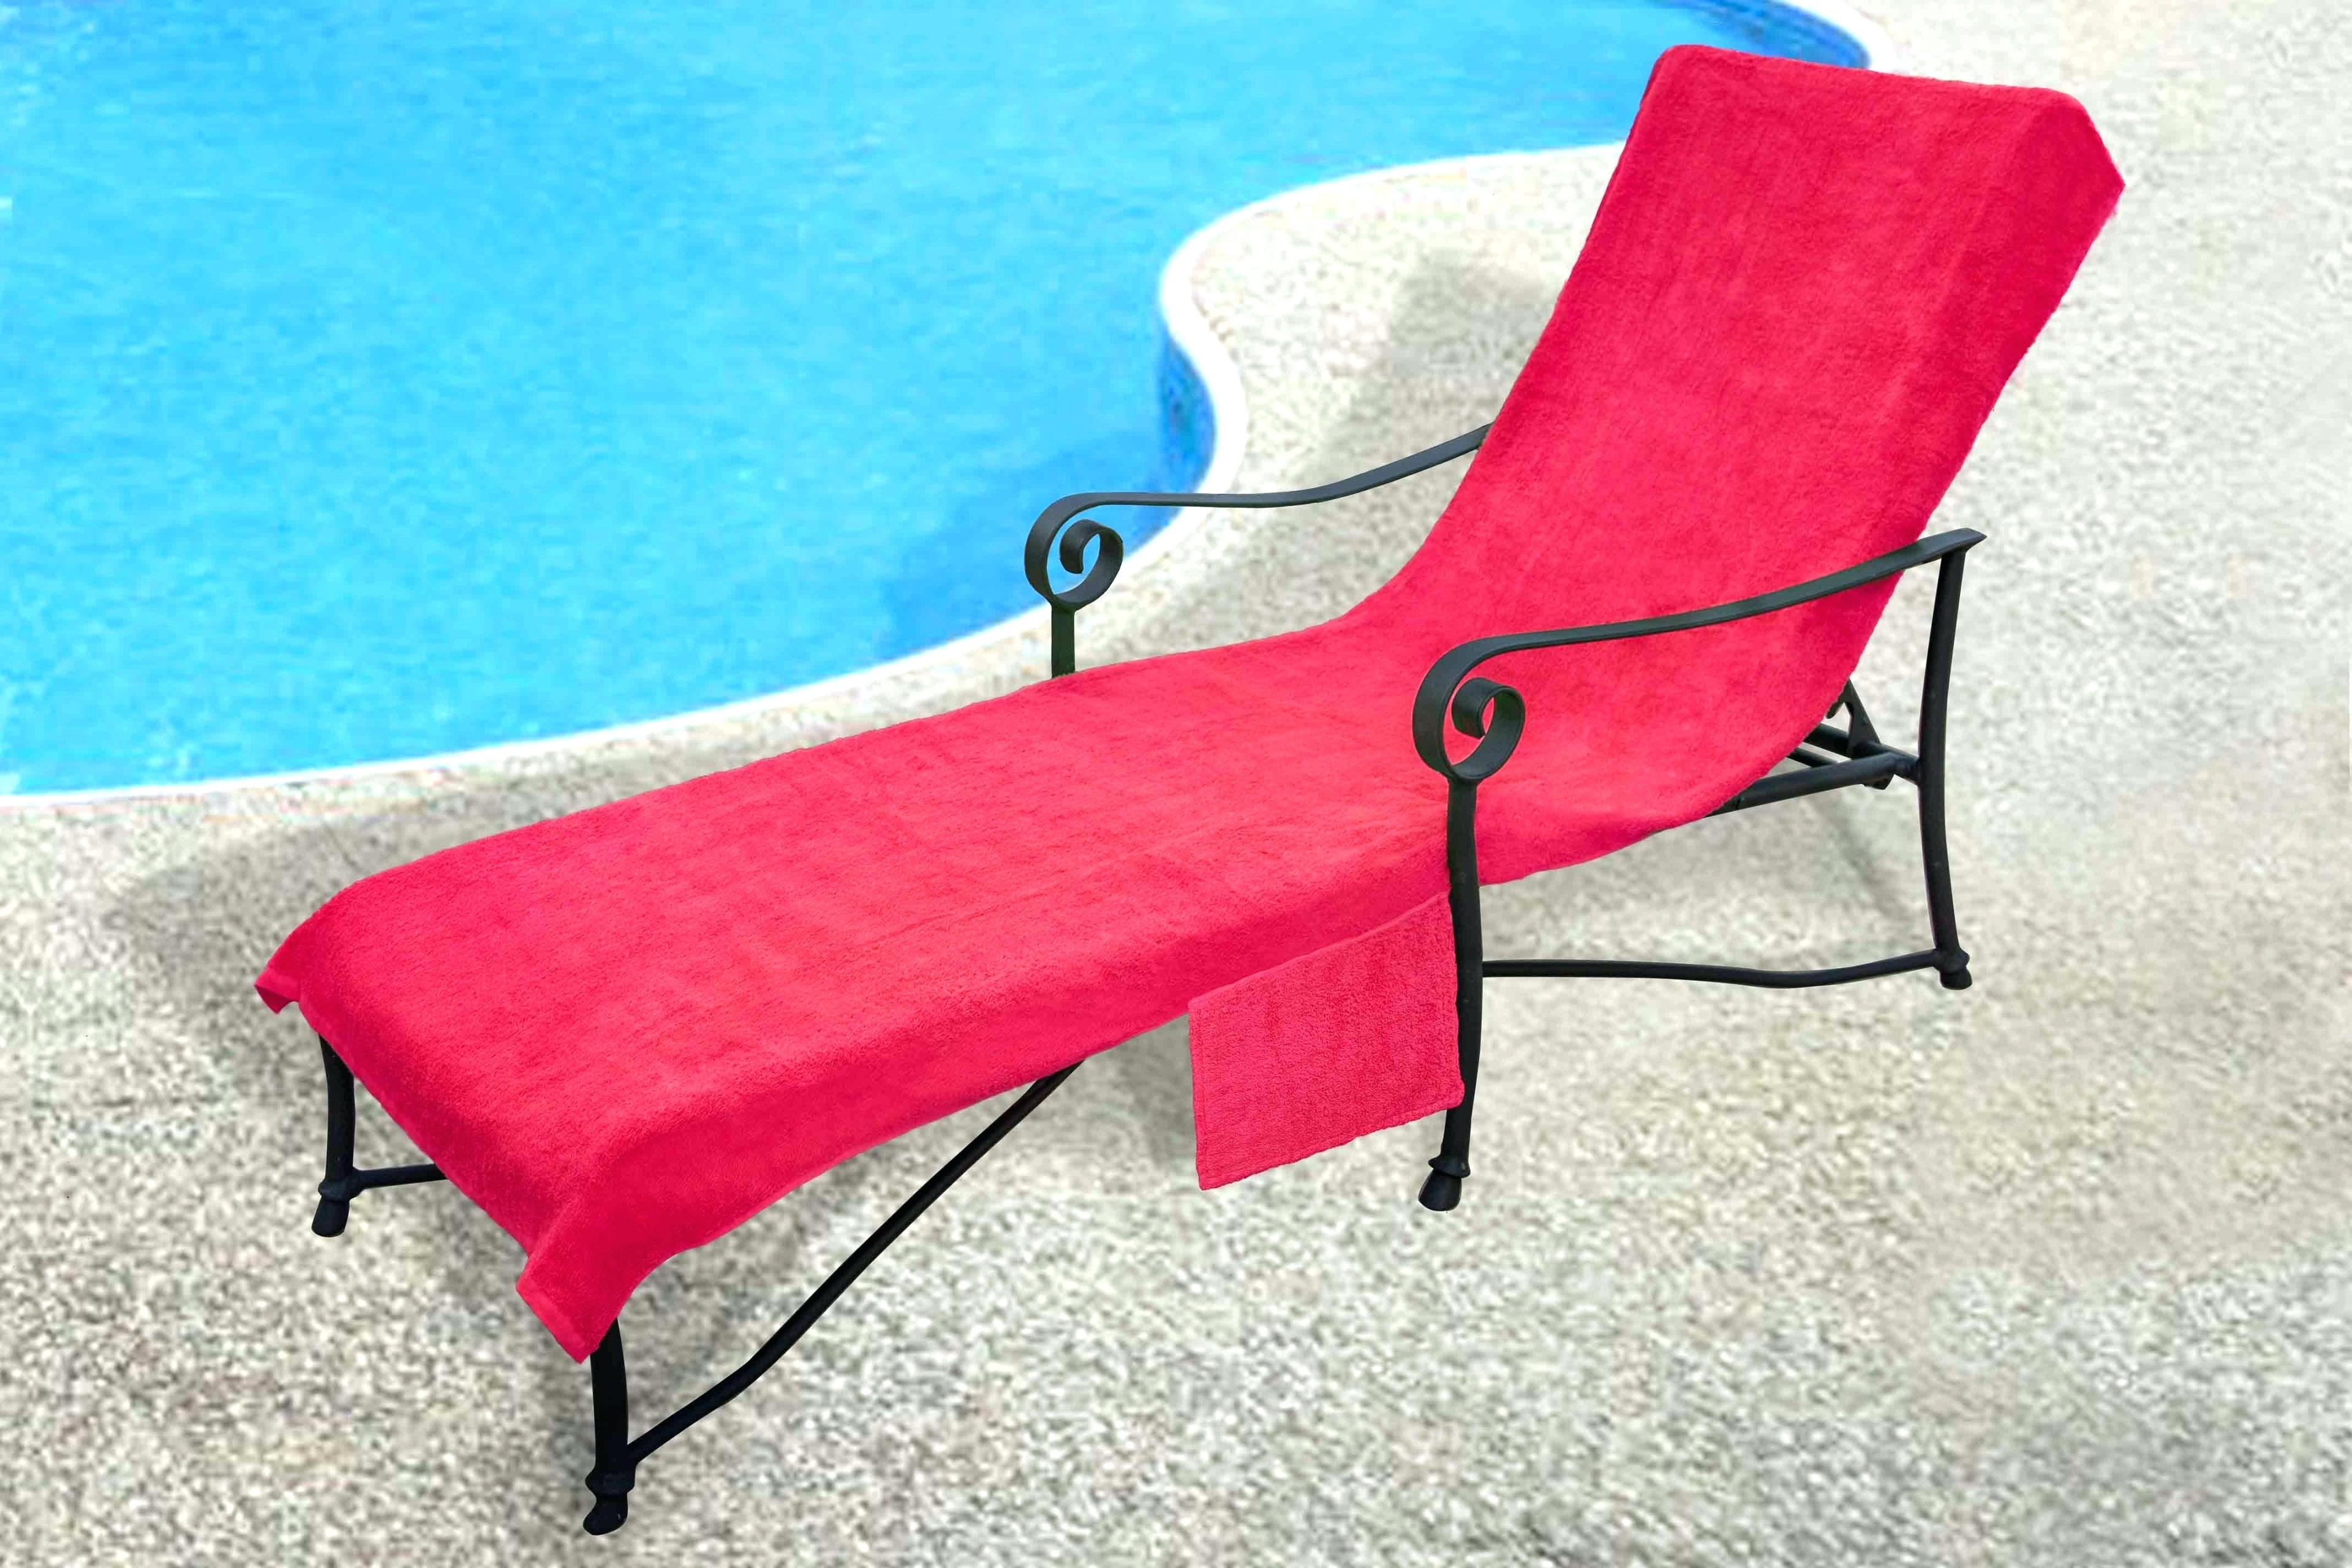 Preferred Chaise Lounge Towel Covers Pertaining To Bahama Beach Towel Chair Covers • Chair Covers Design (View 12 of 15)